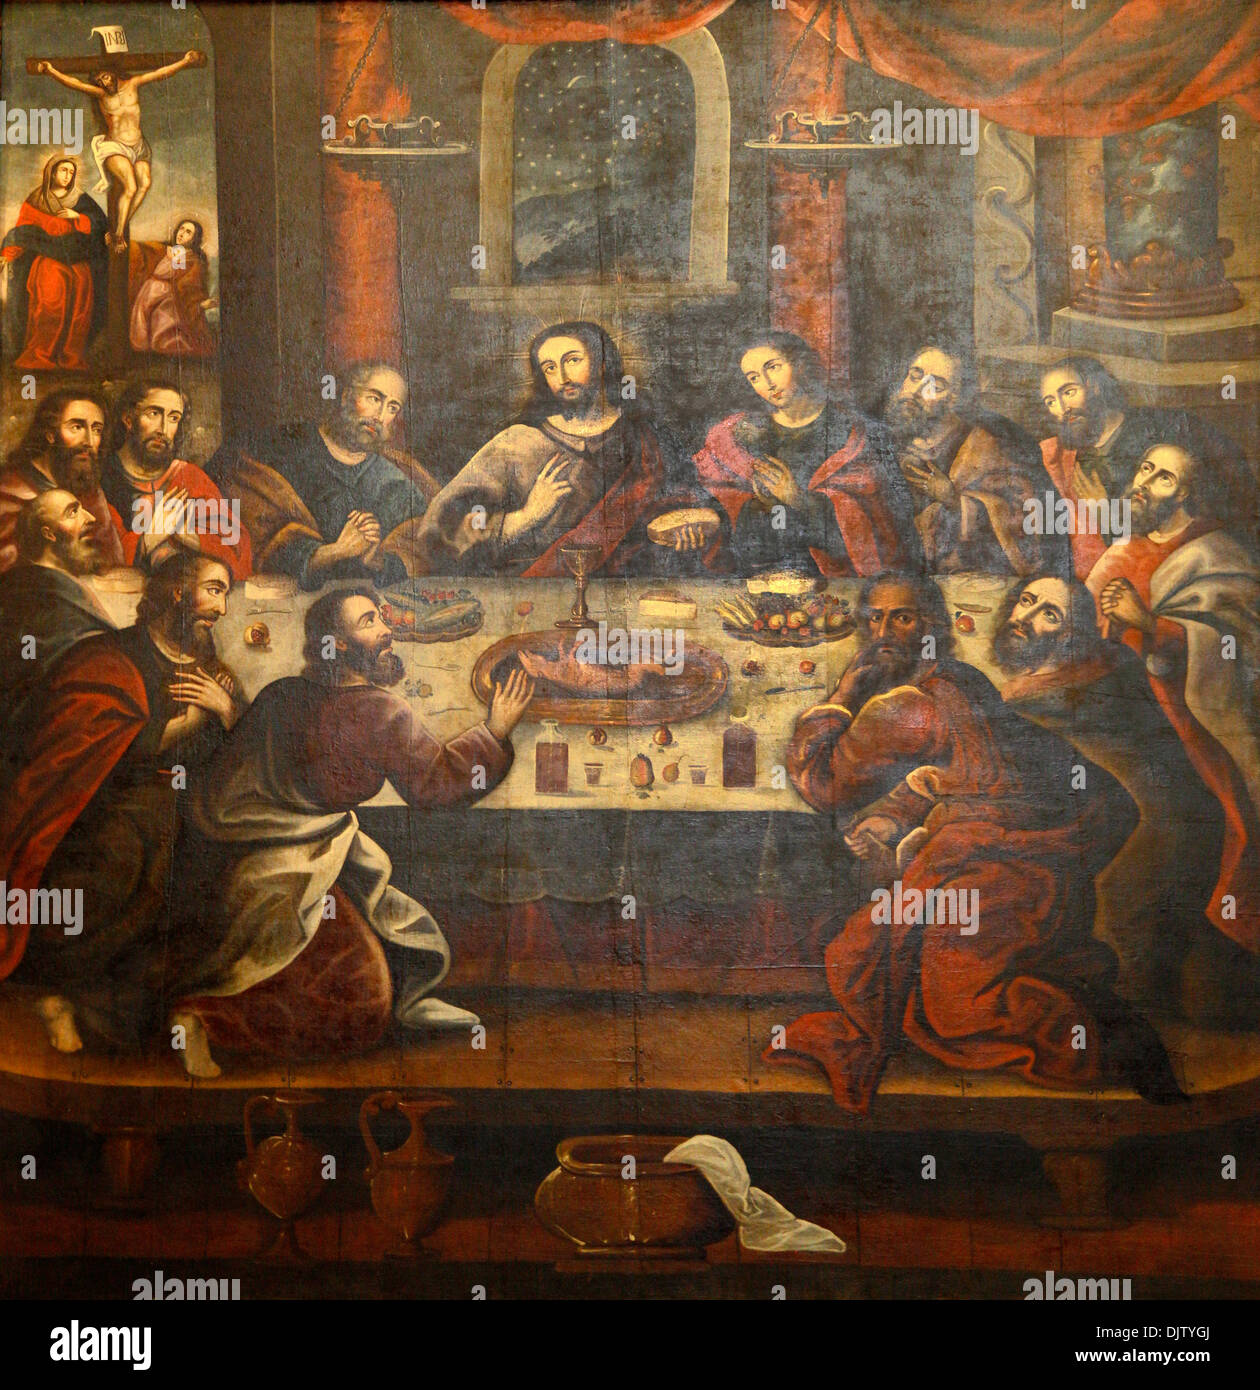 the last supper painting by marcos zapata in the cathedral